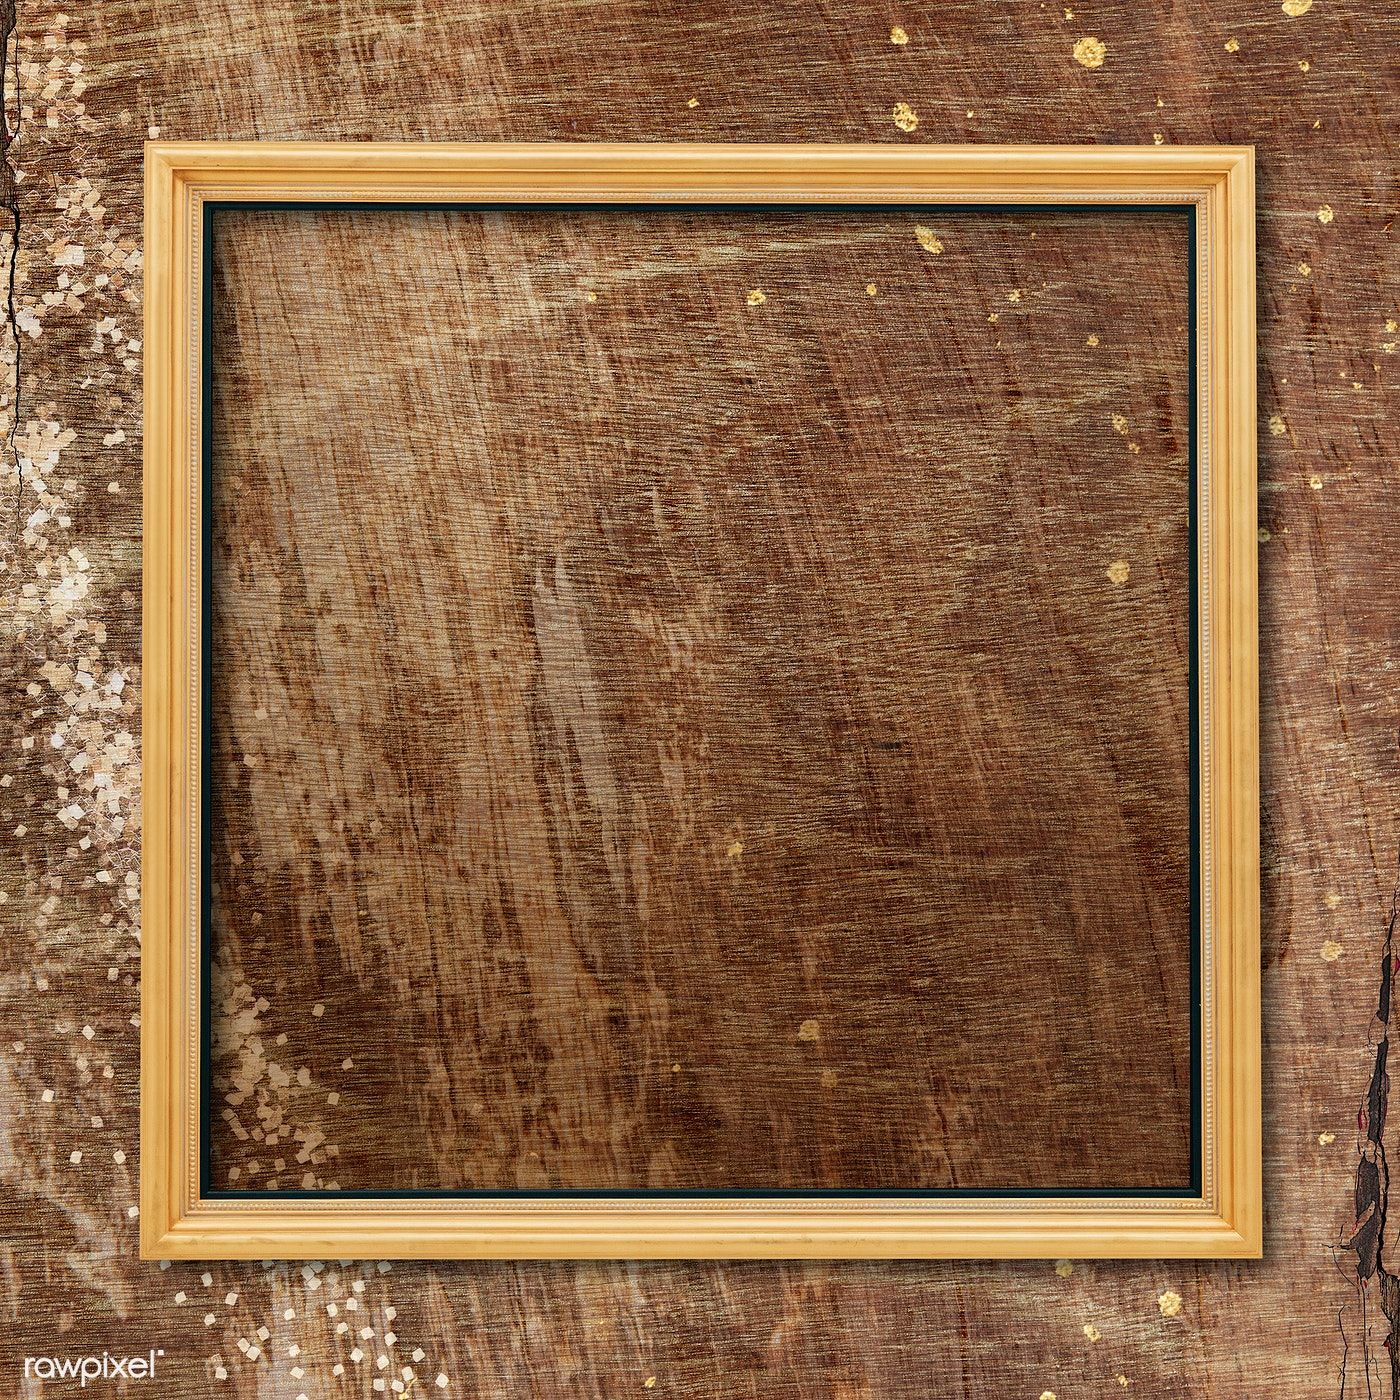 Download Premium Illustration Of Square Frame On Plain Wooden Texture In 2020 Wooden Textures Dark Wood Texture Walnut Wood Texture